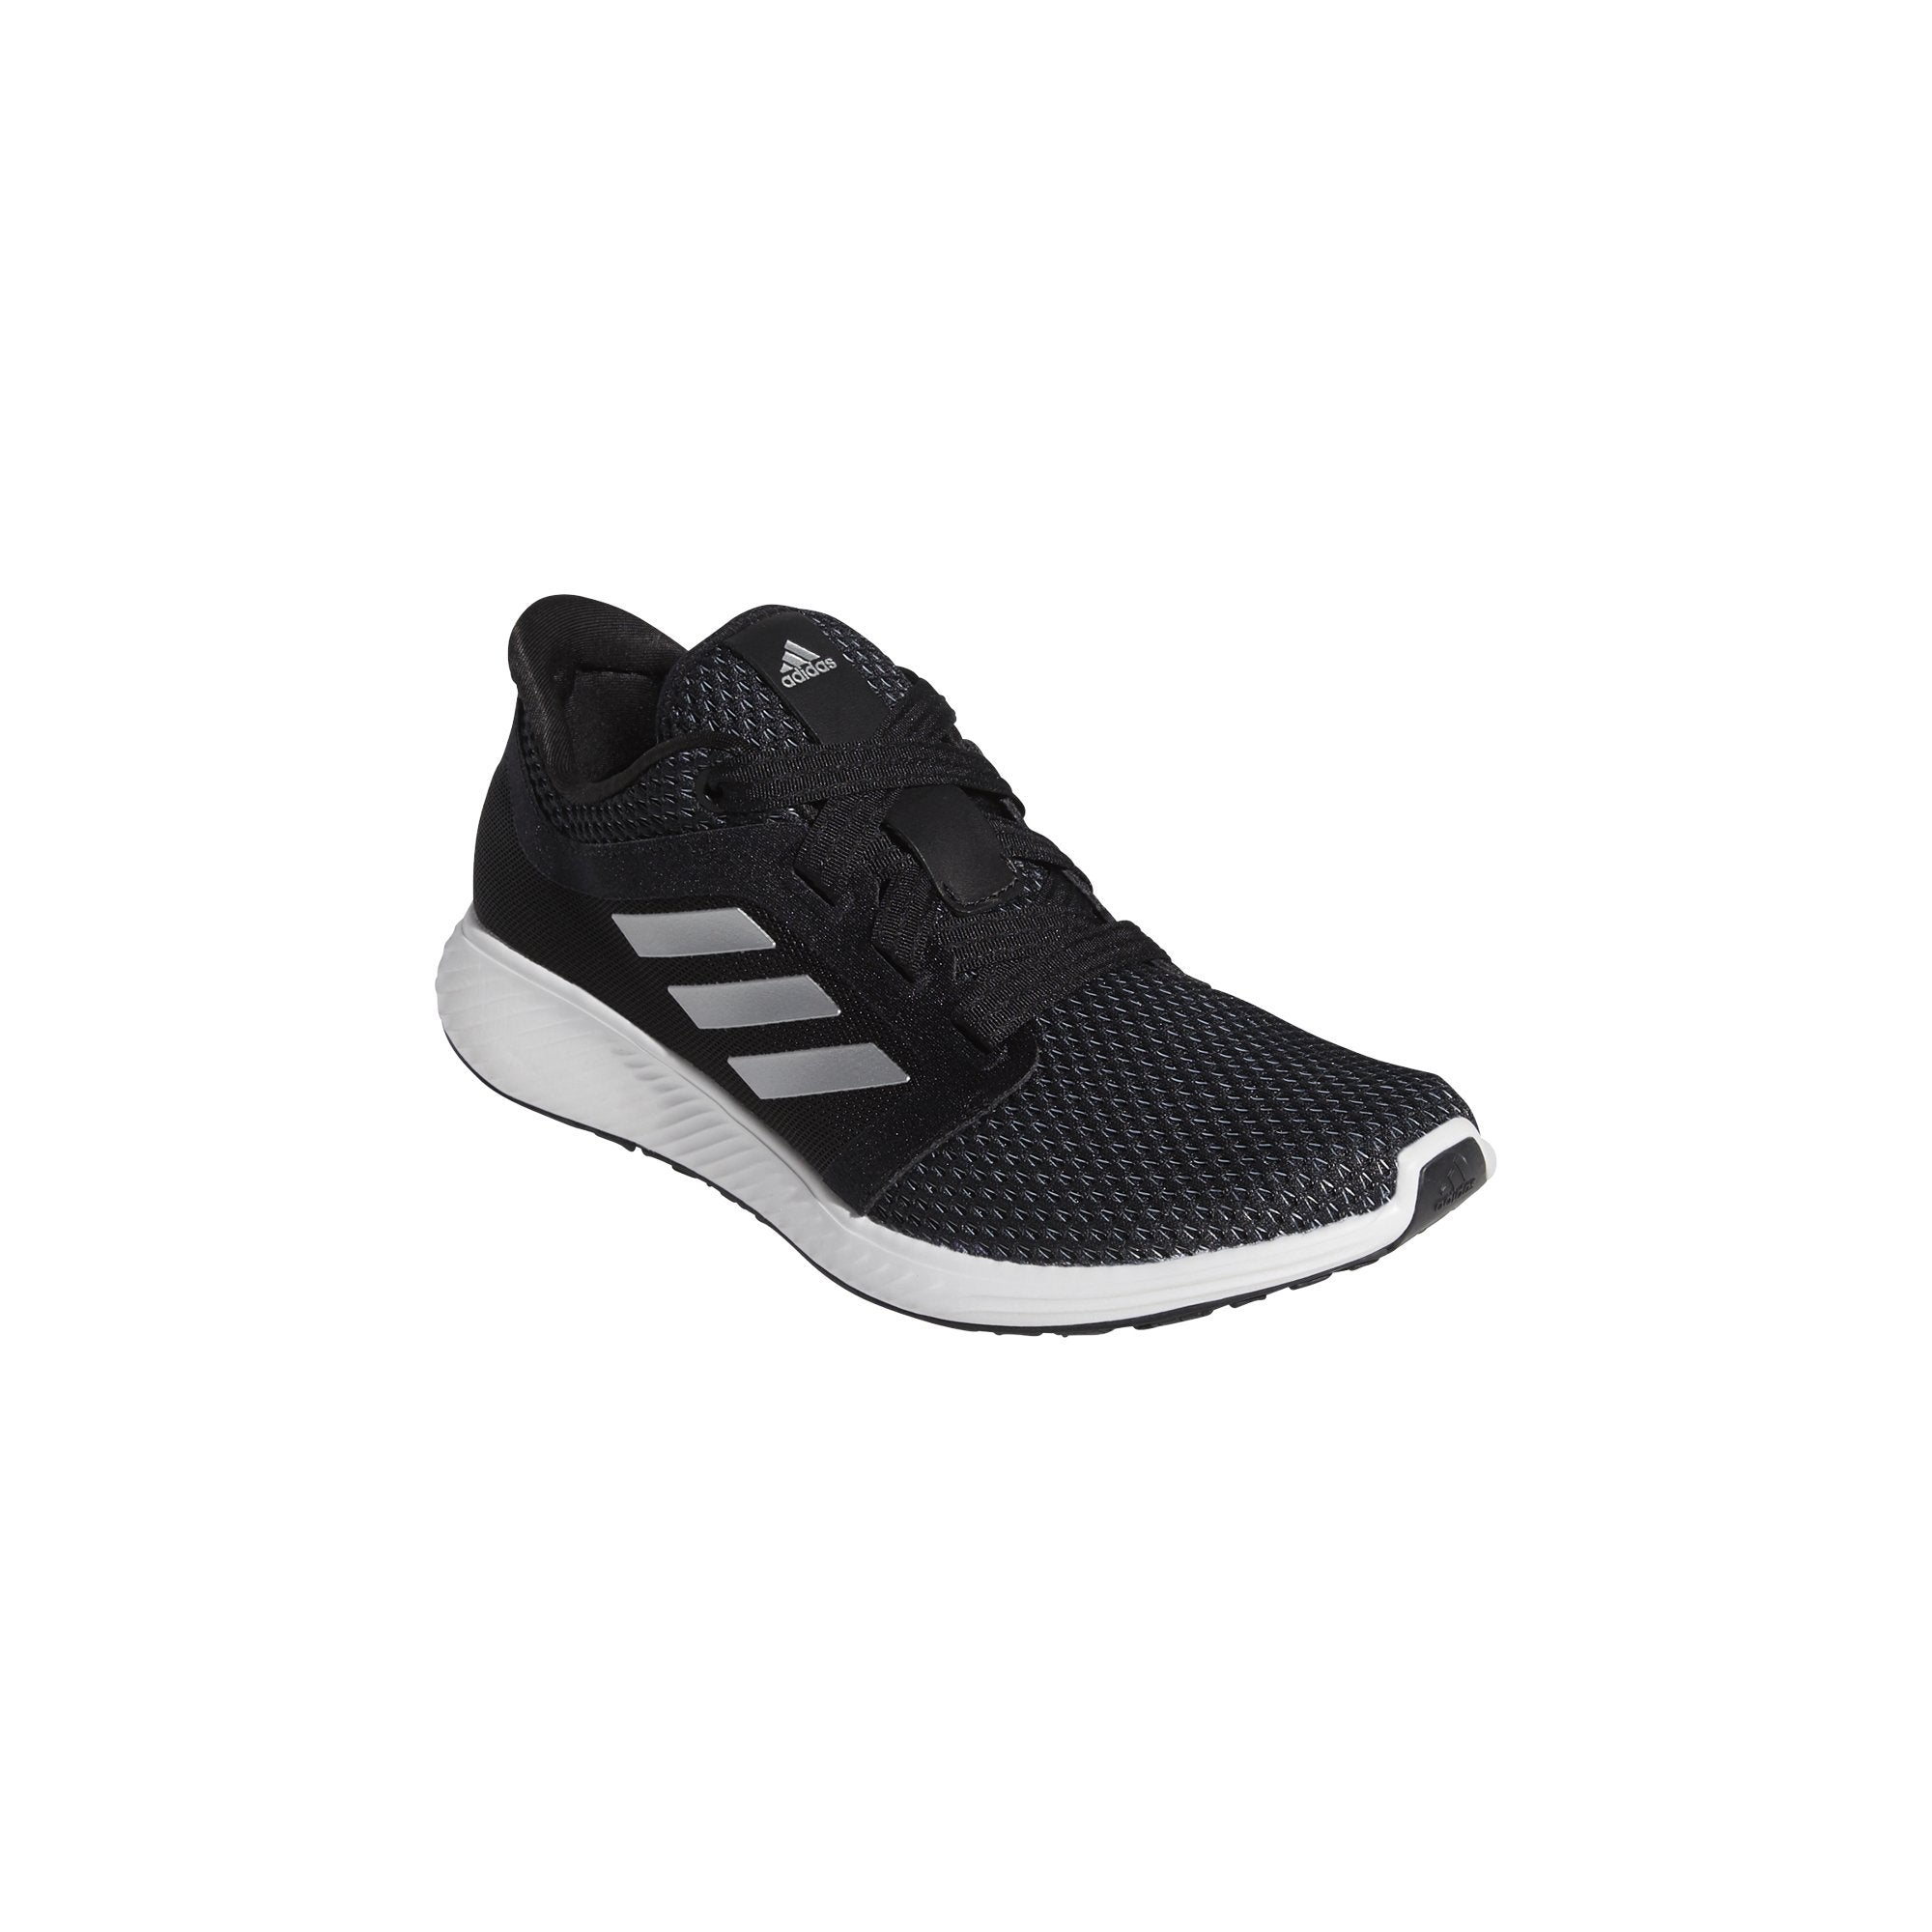 Adidas Womens Edge Lux 3 Shoes - Core Black/Silver Met./Ftwr White SP-Footwear-Womens Adidas